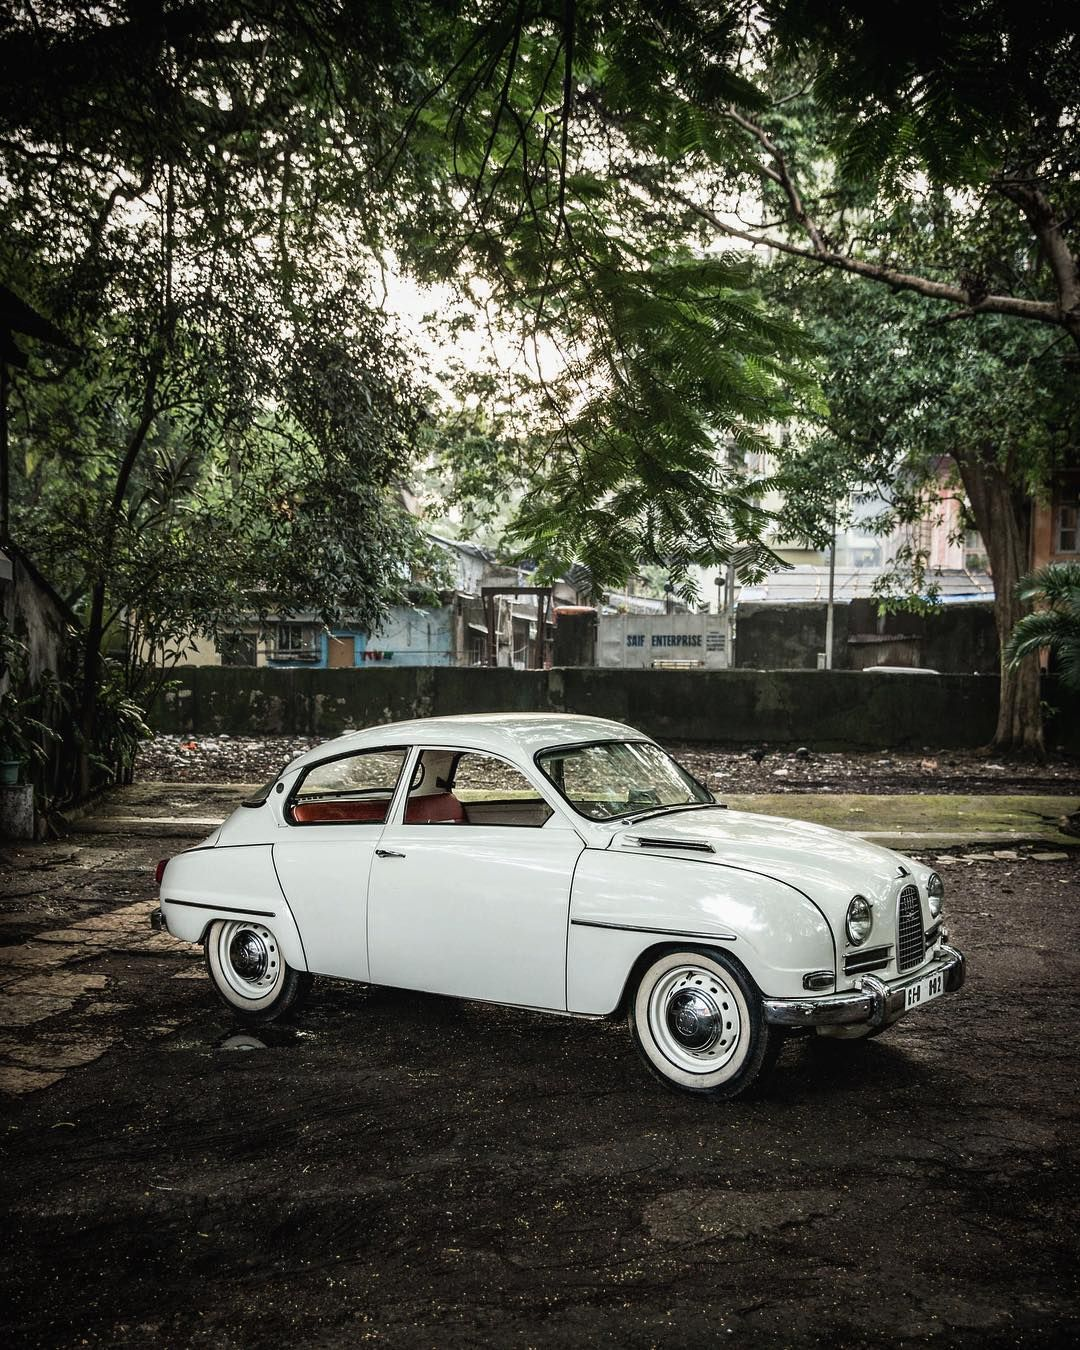 This car belongs to Mr. Merchant, a collector of beautiful